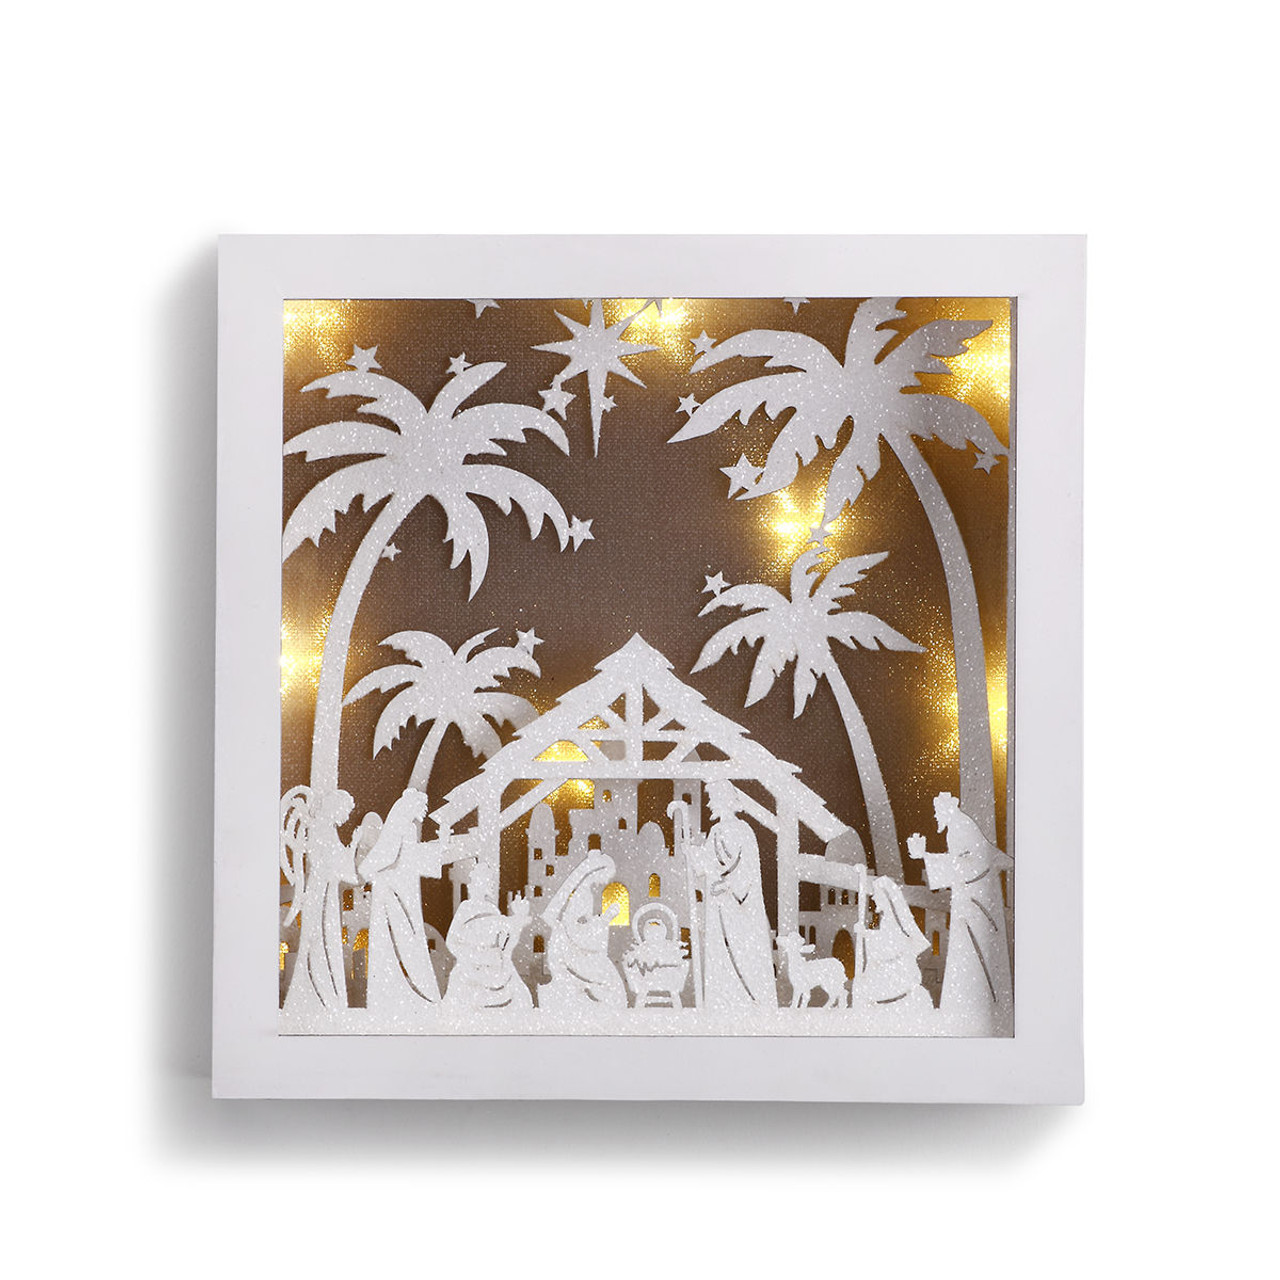 Wall Art Credence Nativity Wall Art Box 3 Dimensional Lighted 8